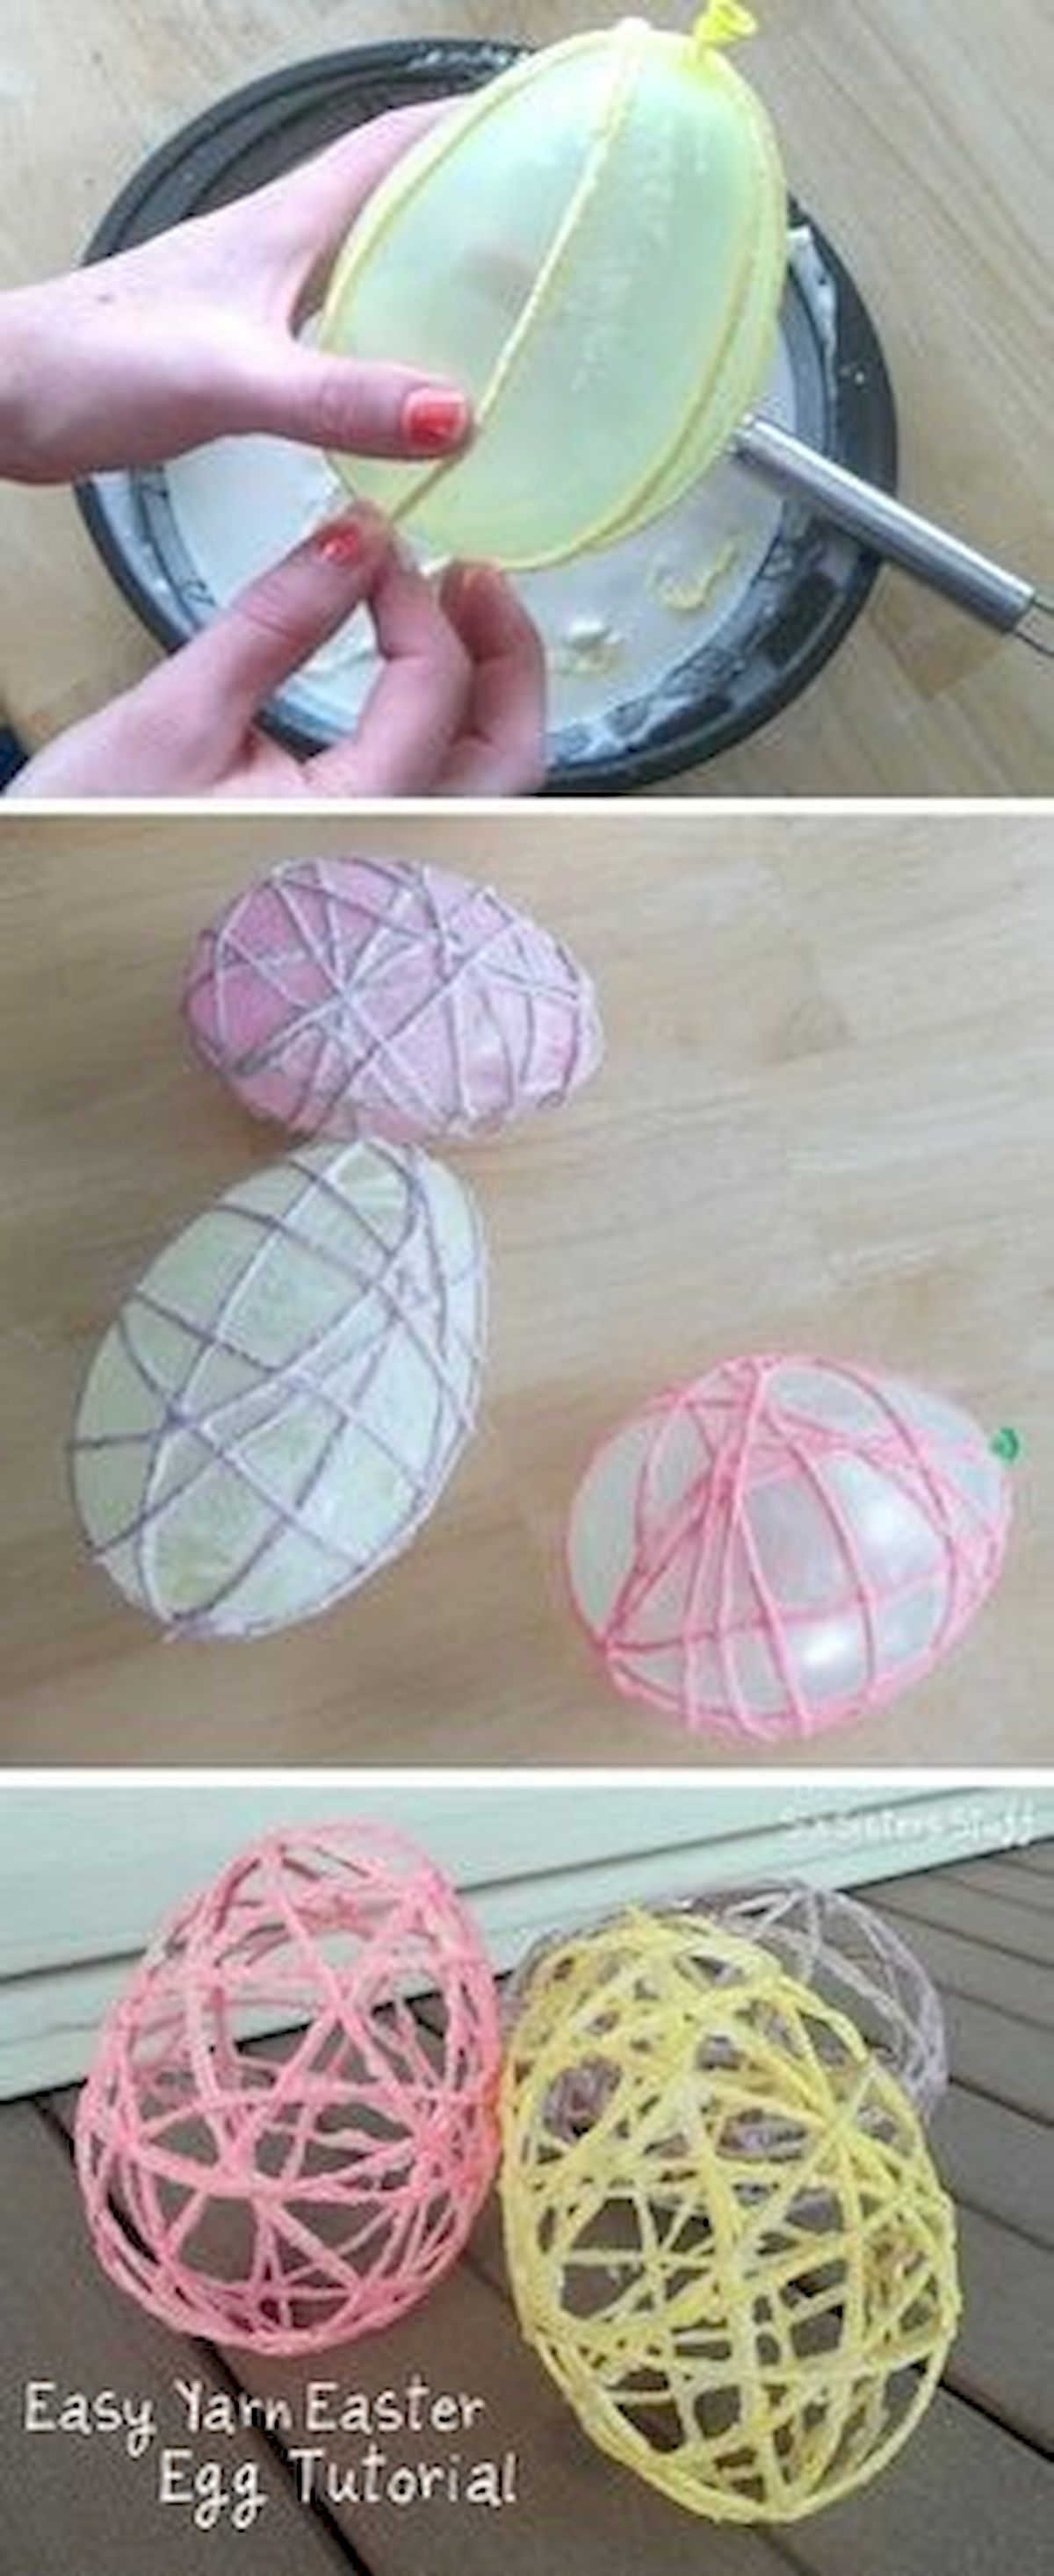 90 Awesome DIY Easter Eggs Ideas (66)